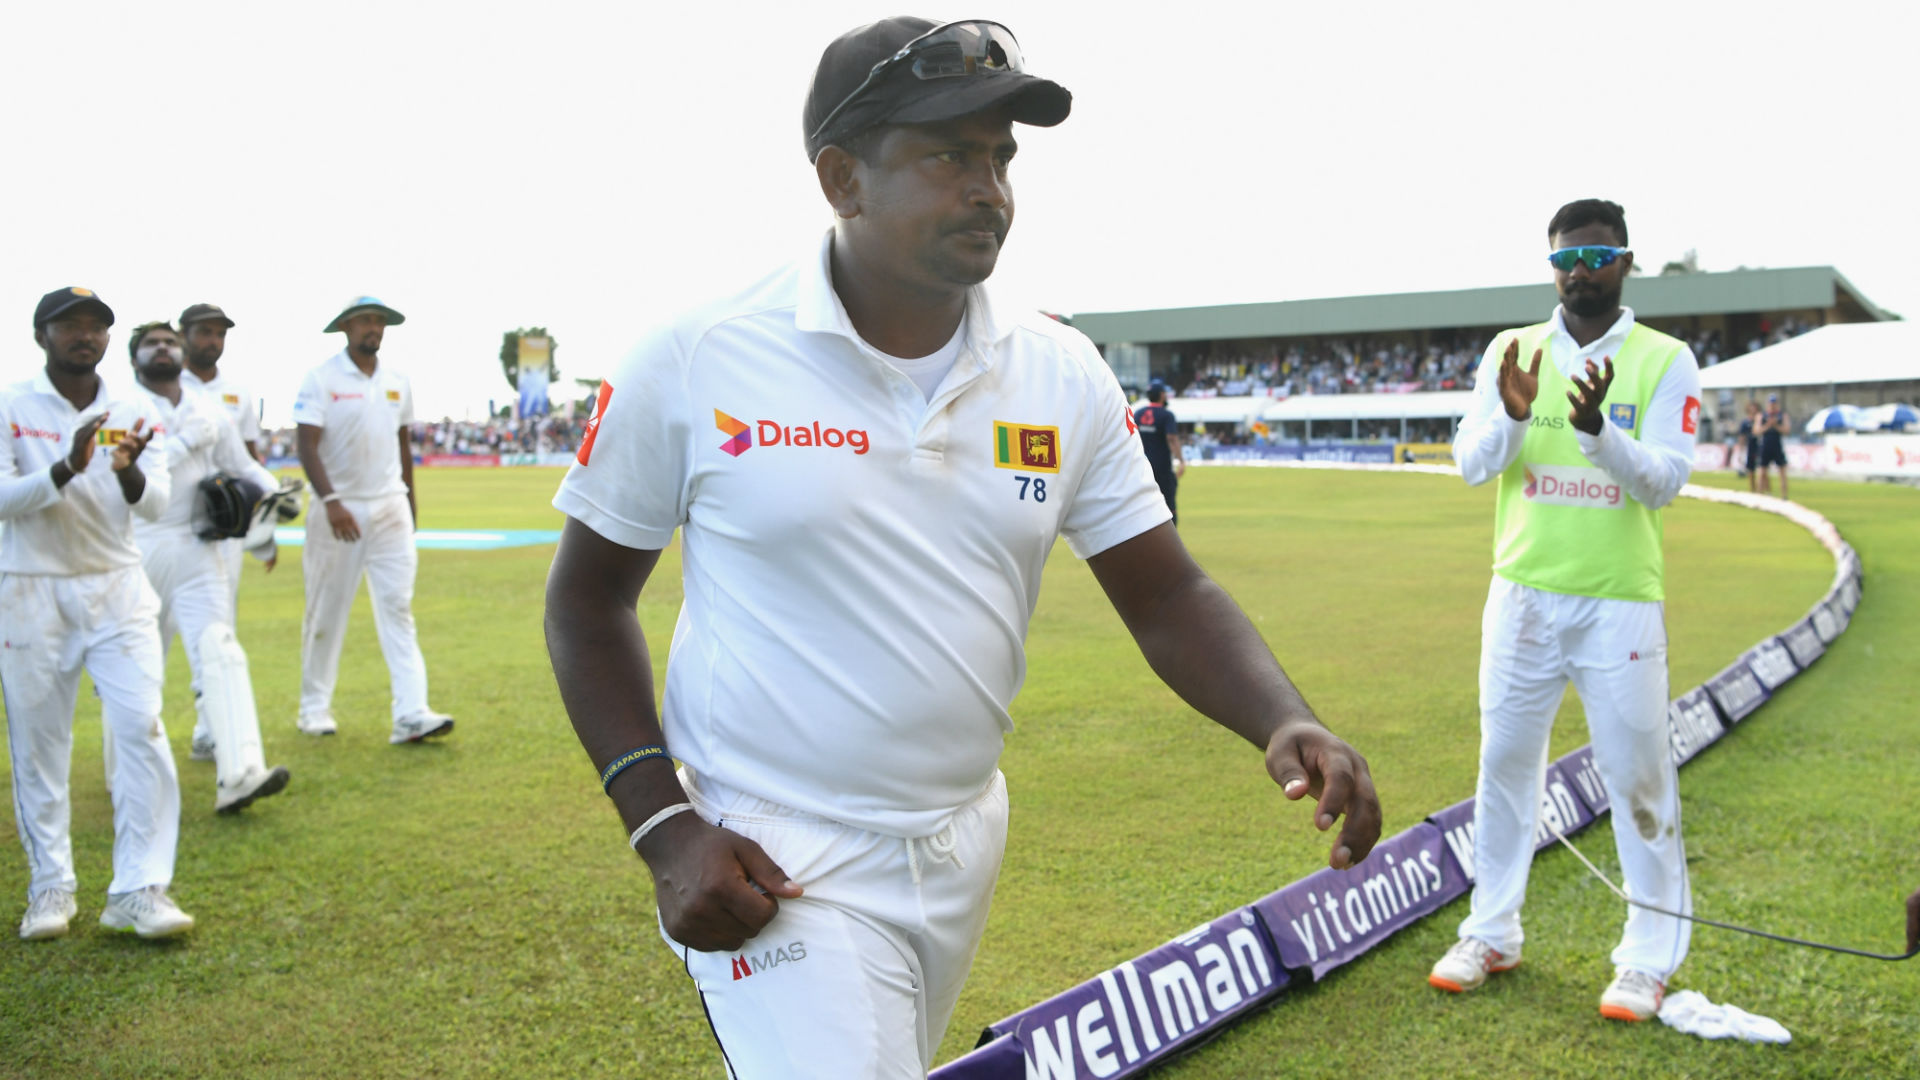 Chandimal sorry as Herath is denied winning farewell